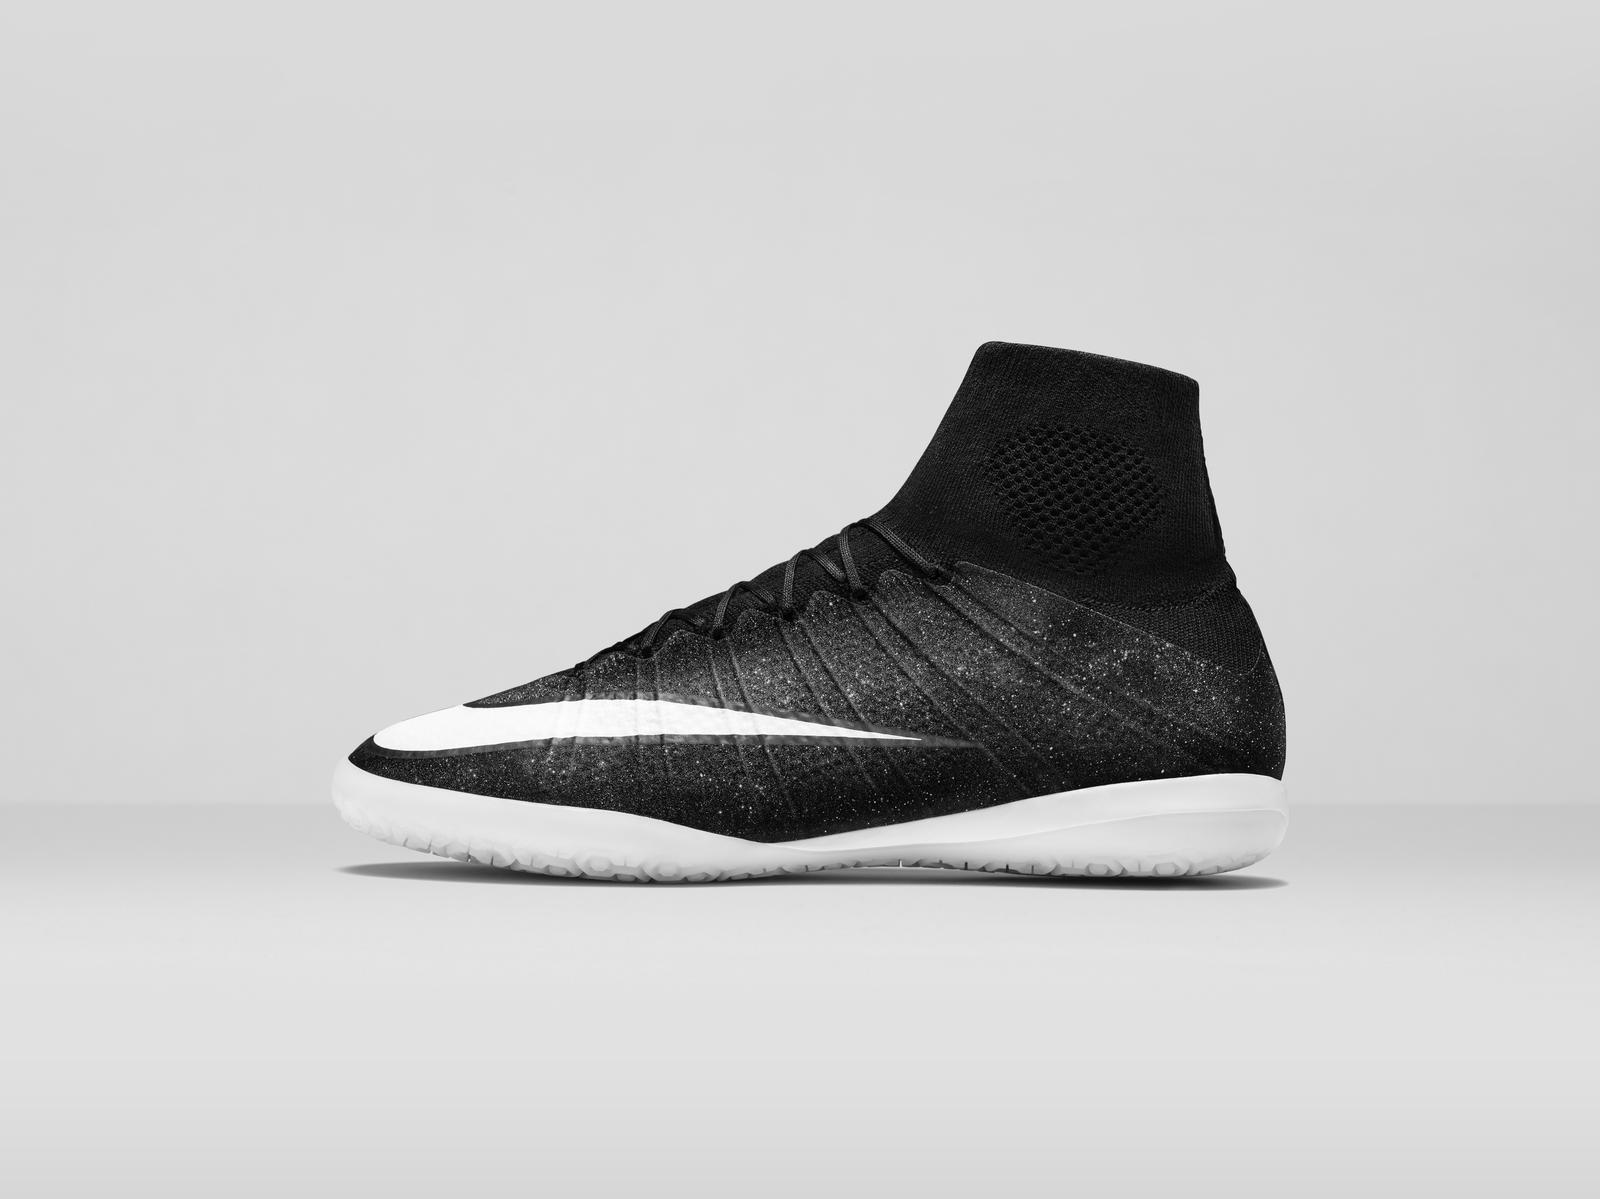 Nike Elastico Superfly IC 'CR7′